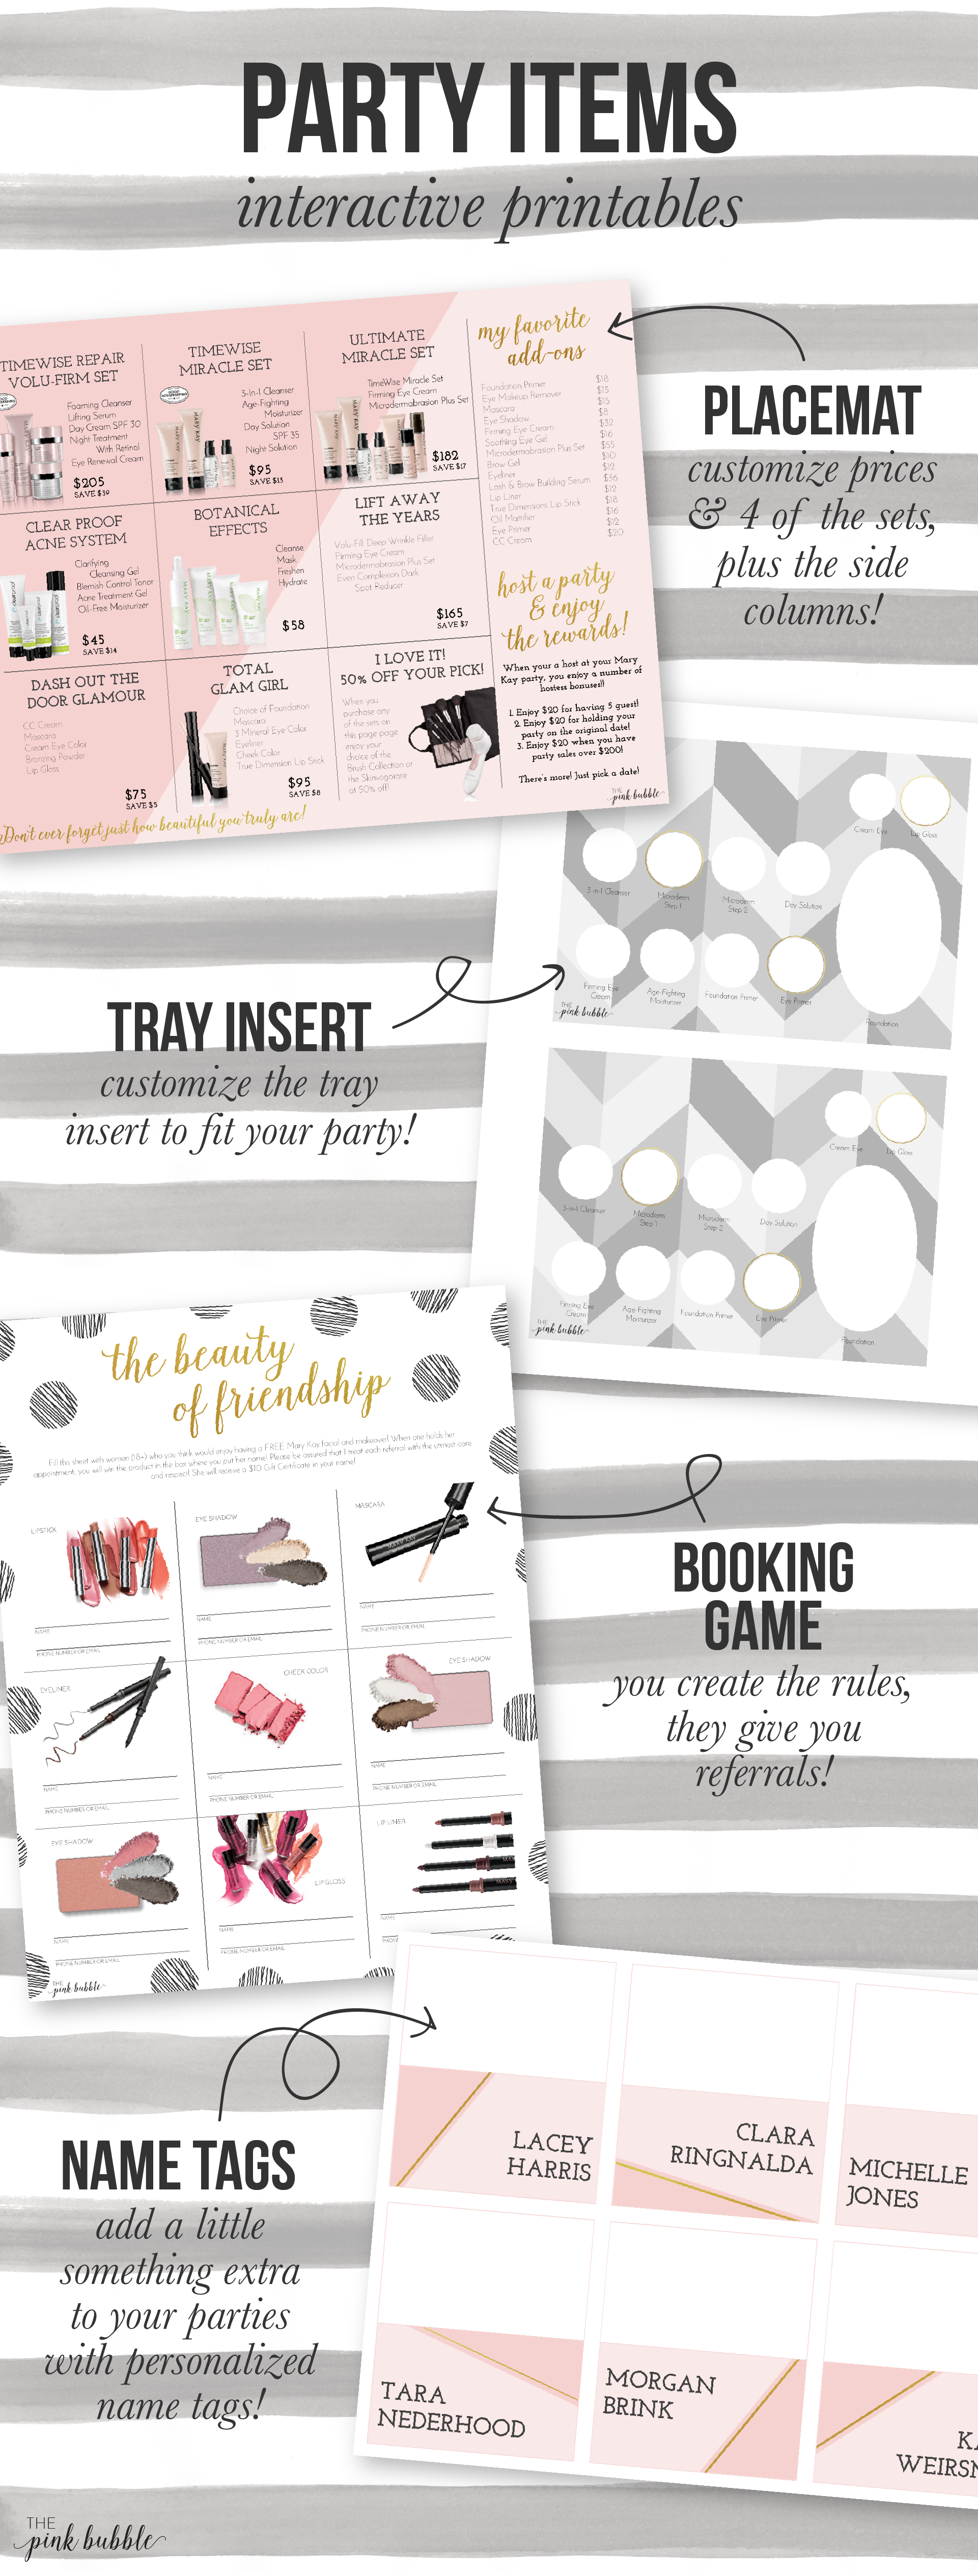 Customizable Mary Kay Party Items! Including a placemat